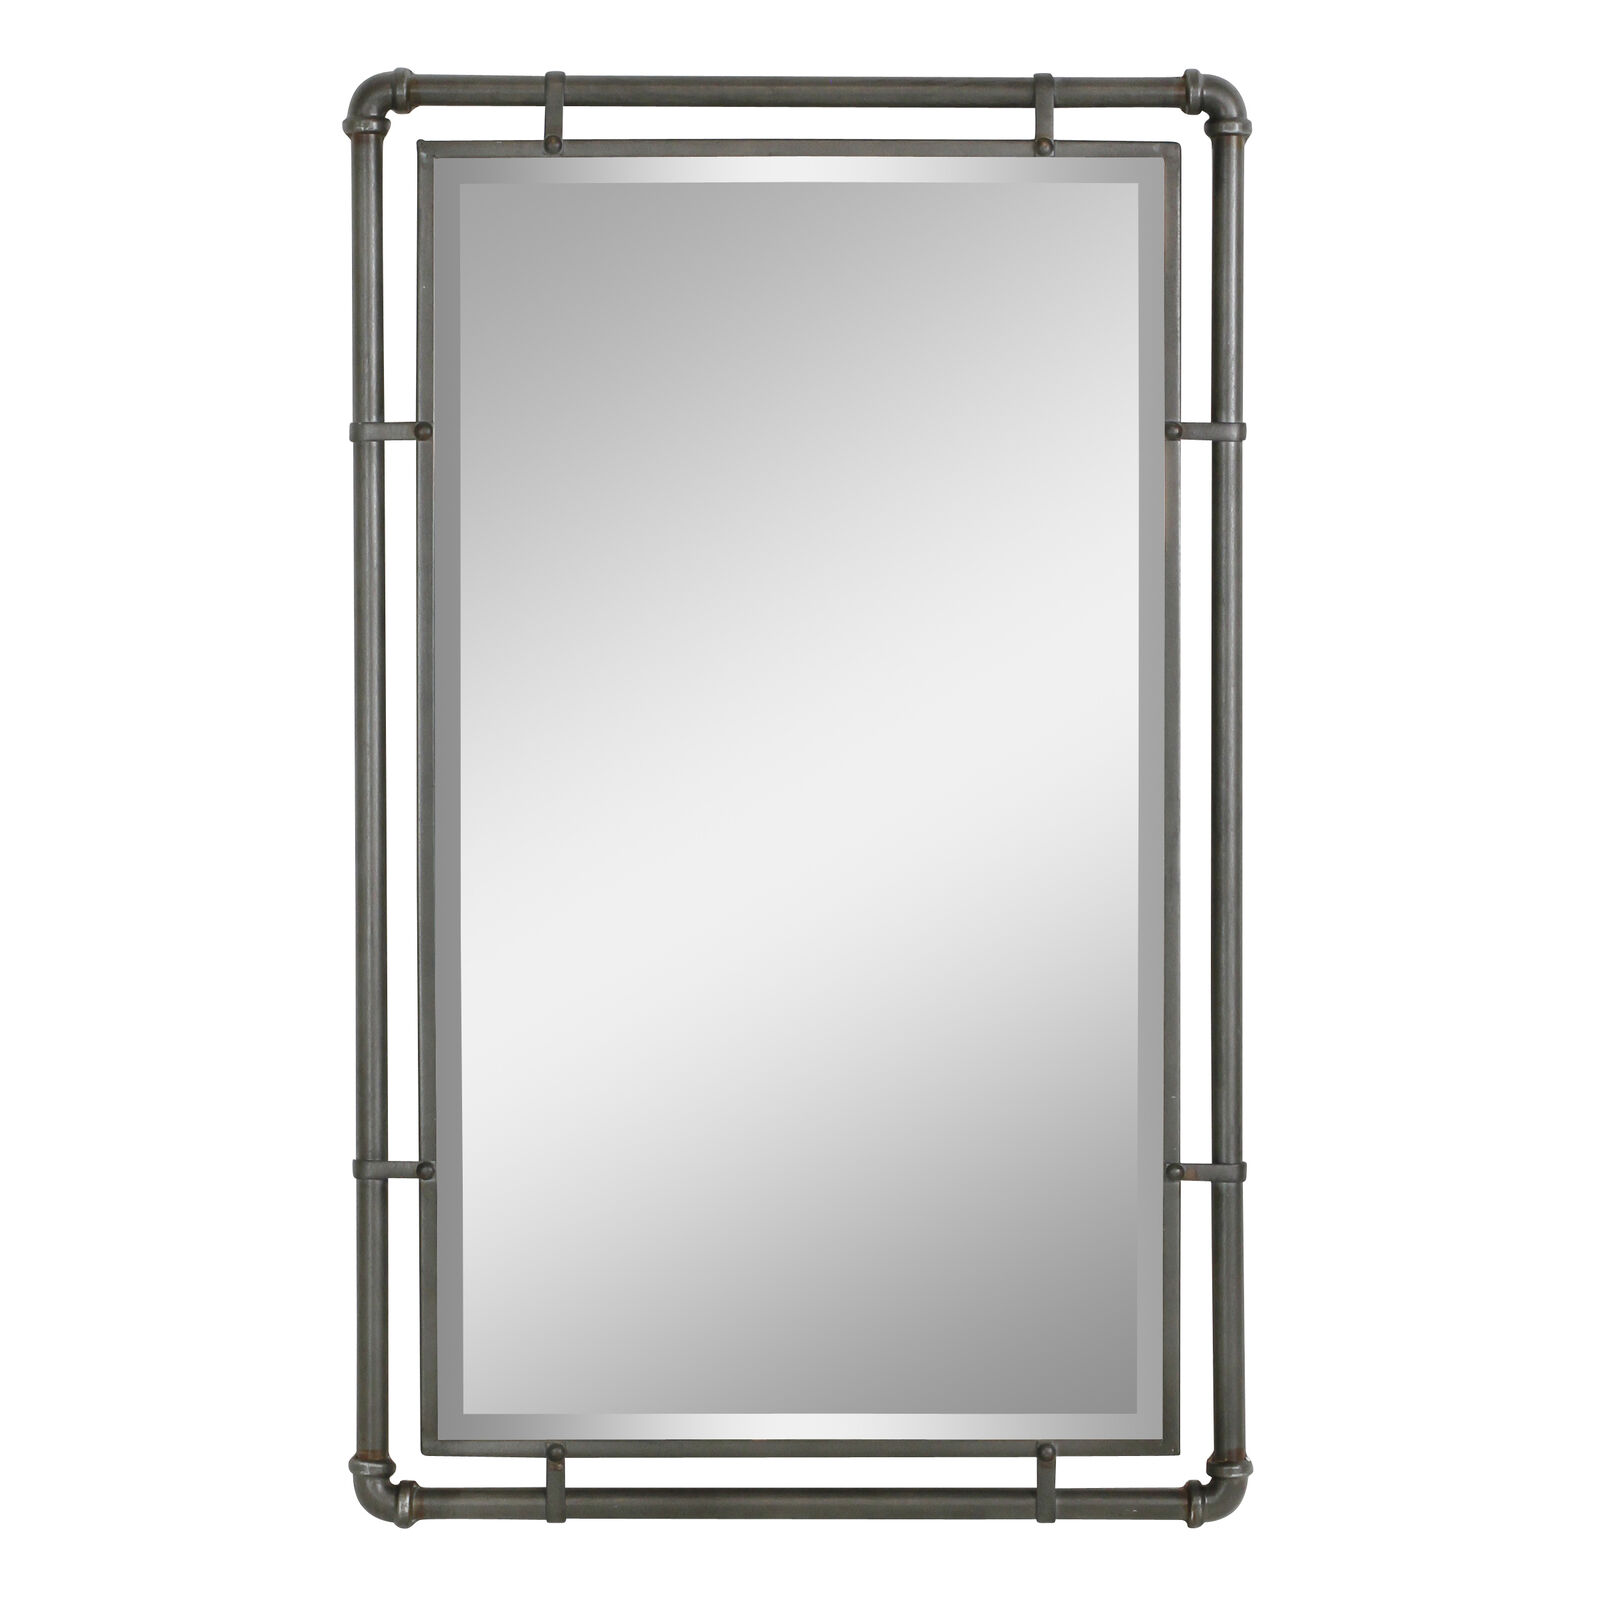 Okeefe Geometric Metal Frame Hanging Accent Mirror With Mounting Brackets For Sale Online Ebay